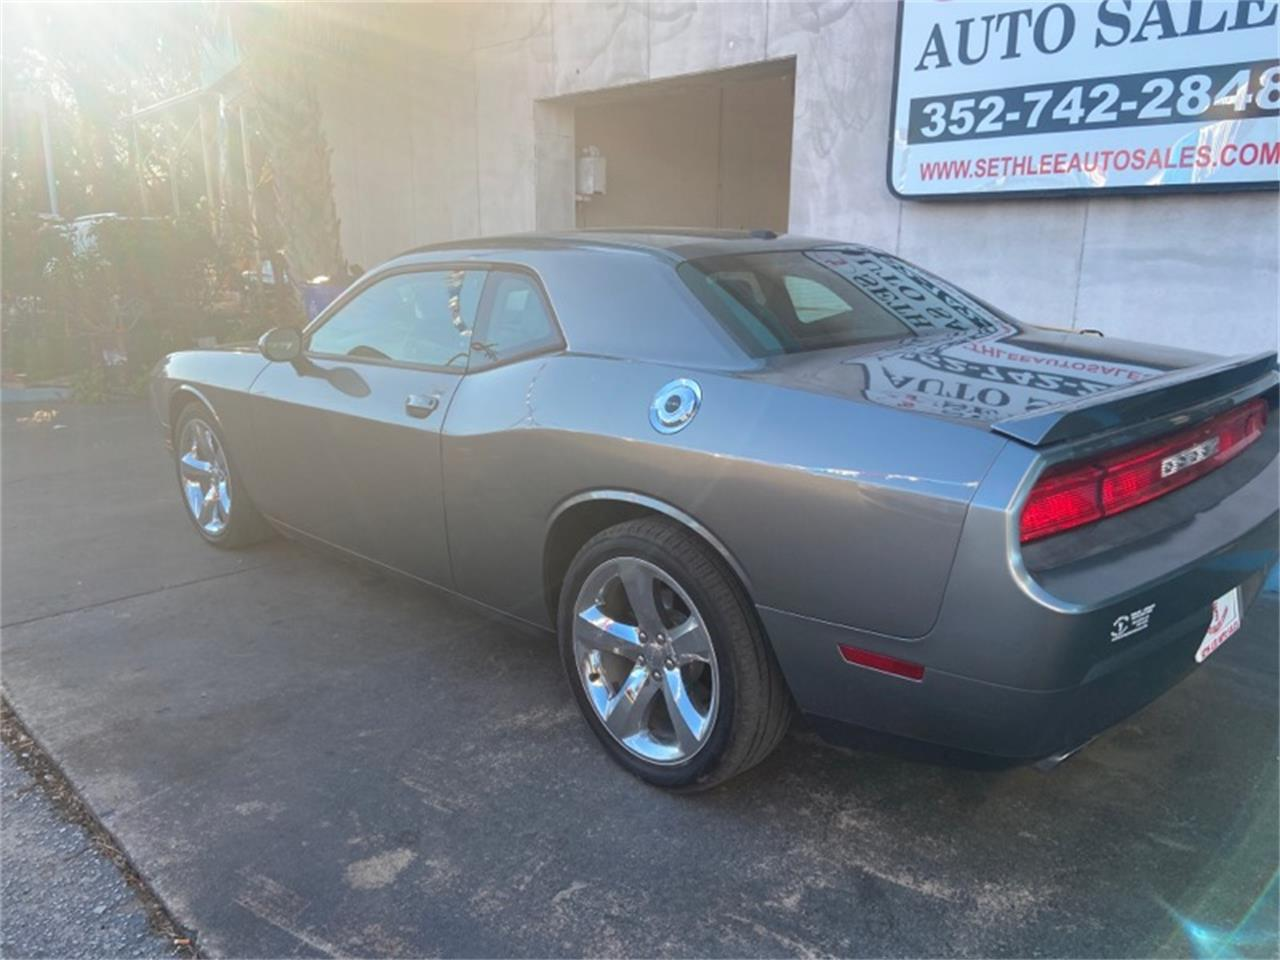 2012 Dodge Challenger (CC-1316914) for sale in Tavares, Florida